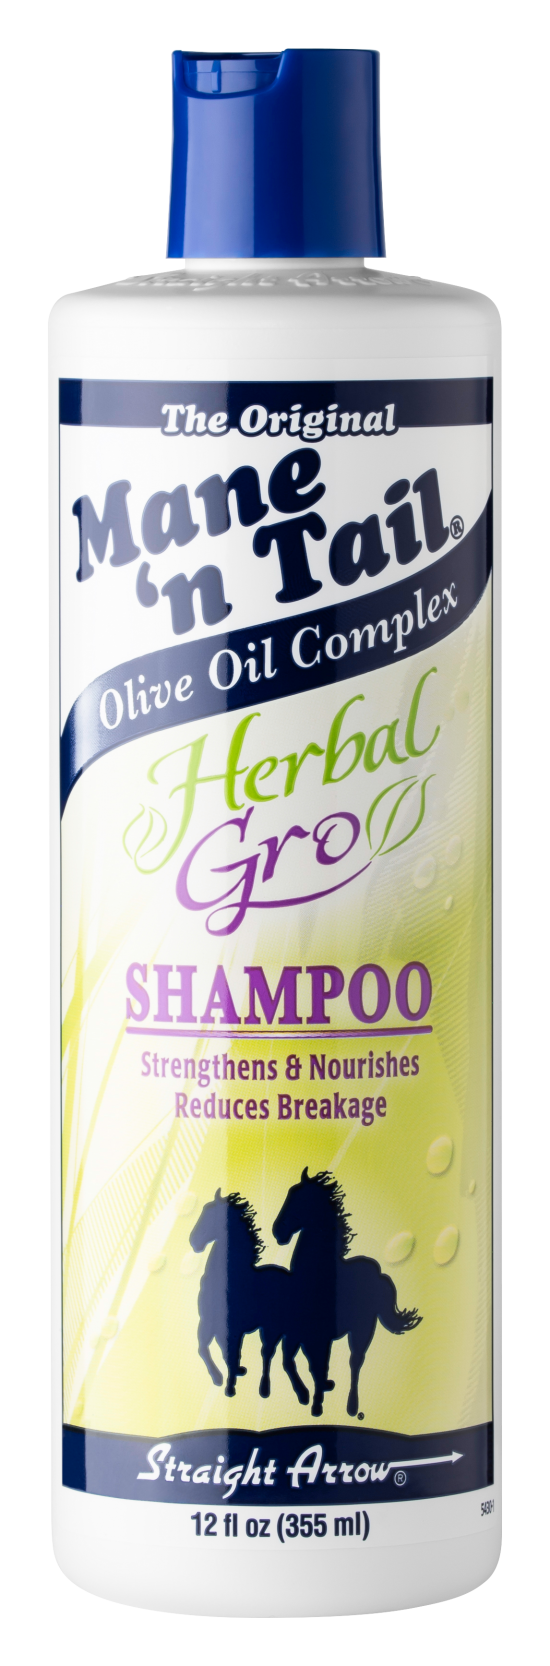 Herbal-Gro Shampoo